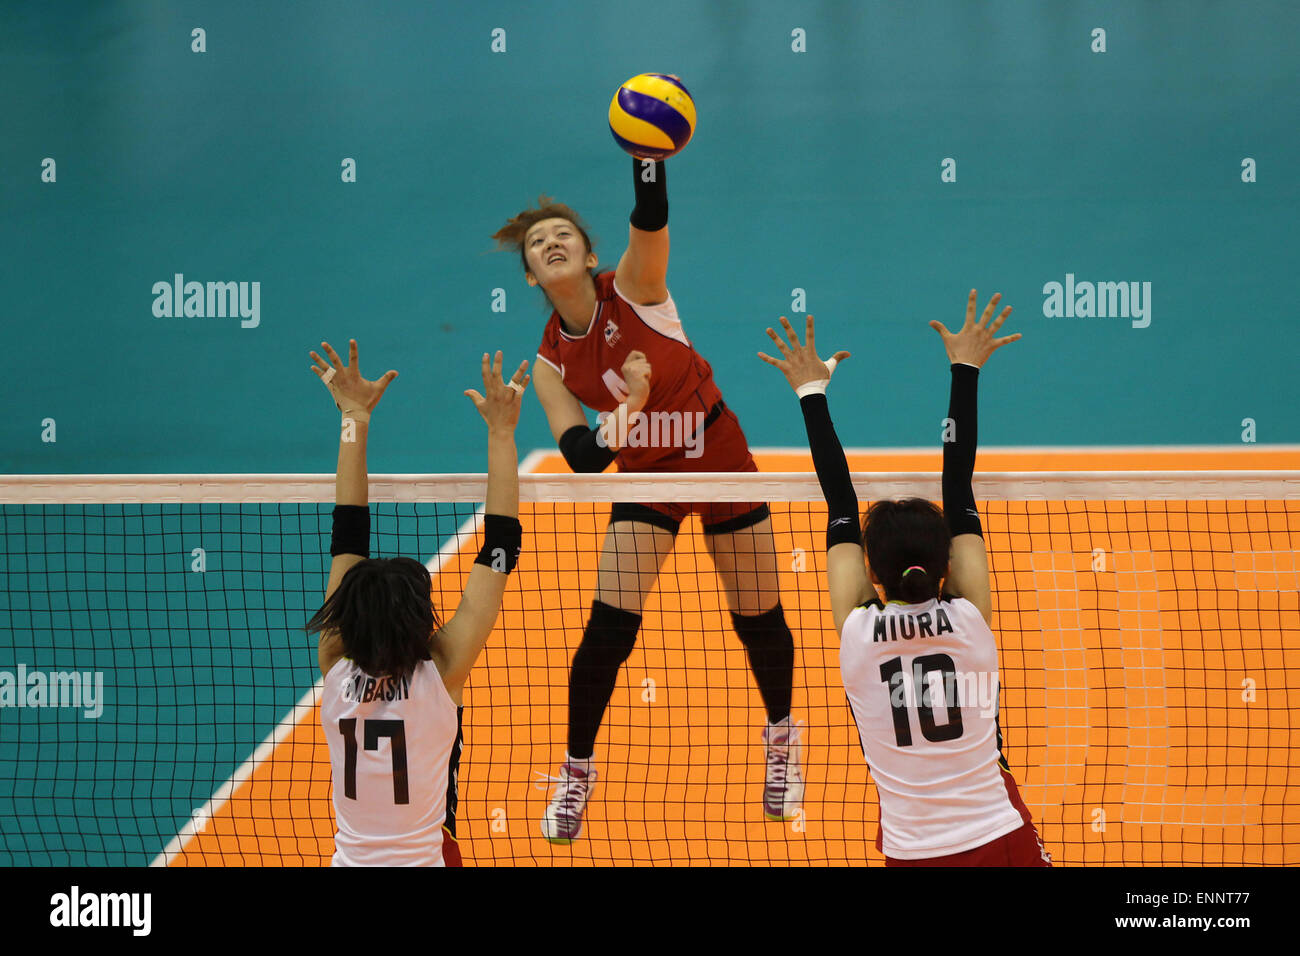 Pasig City, Philippines. 9th May, 2015. An Hyeri (C) of South Korea spikes the ball against Kaori Mabashi (L) and - Stock Image